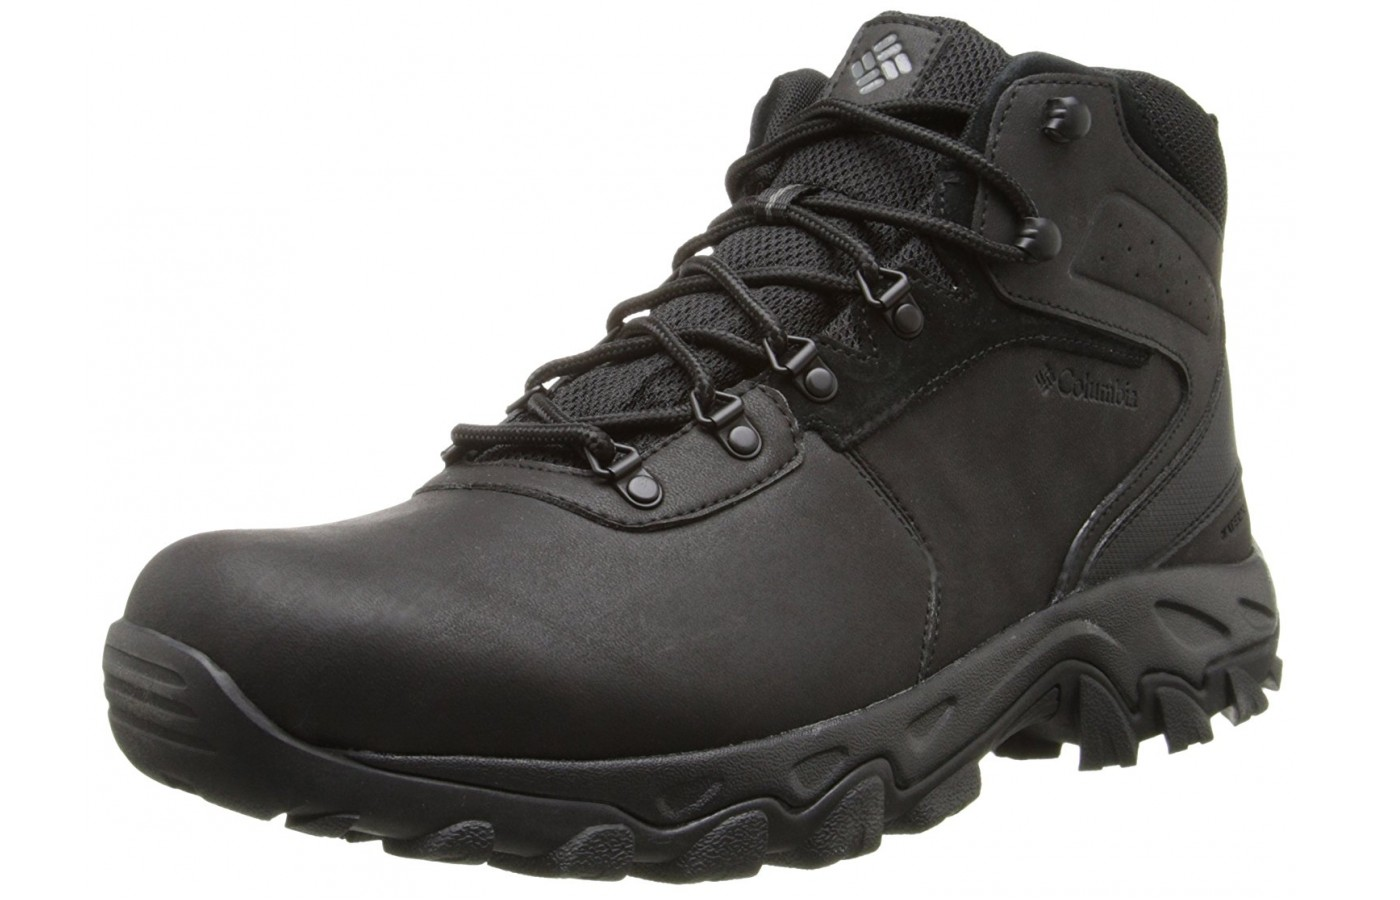 A three quarter view of the Columbia Newton Ridge Plus II hiking boot